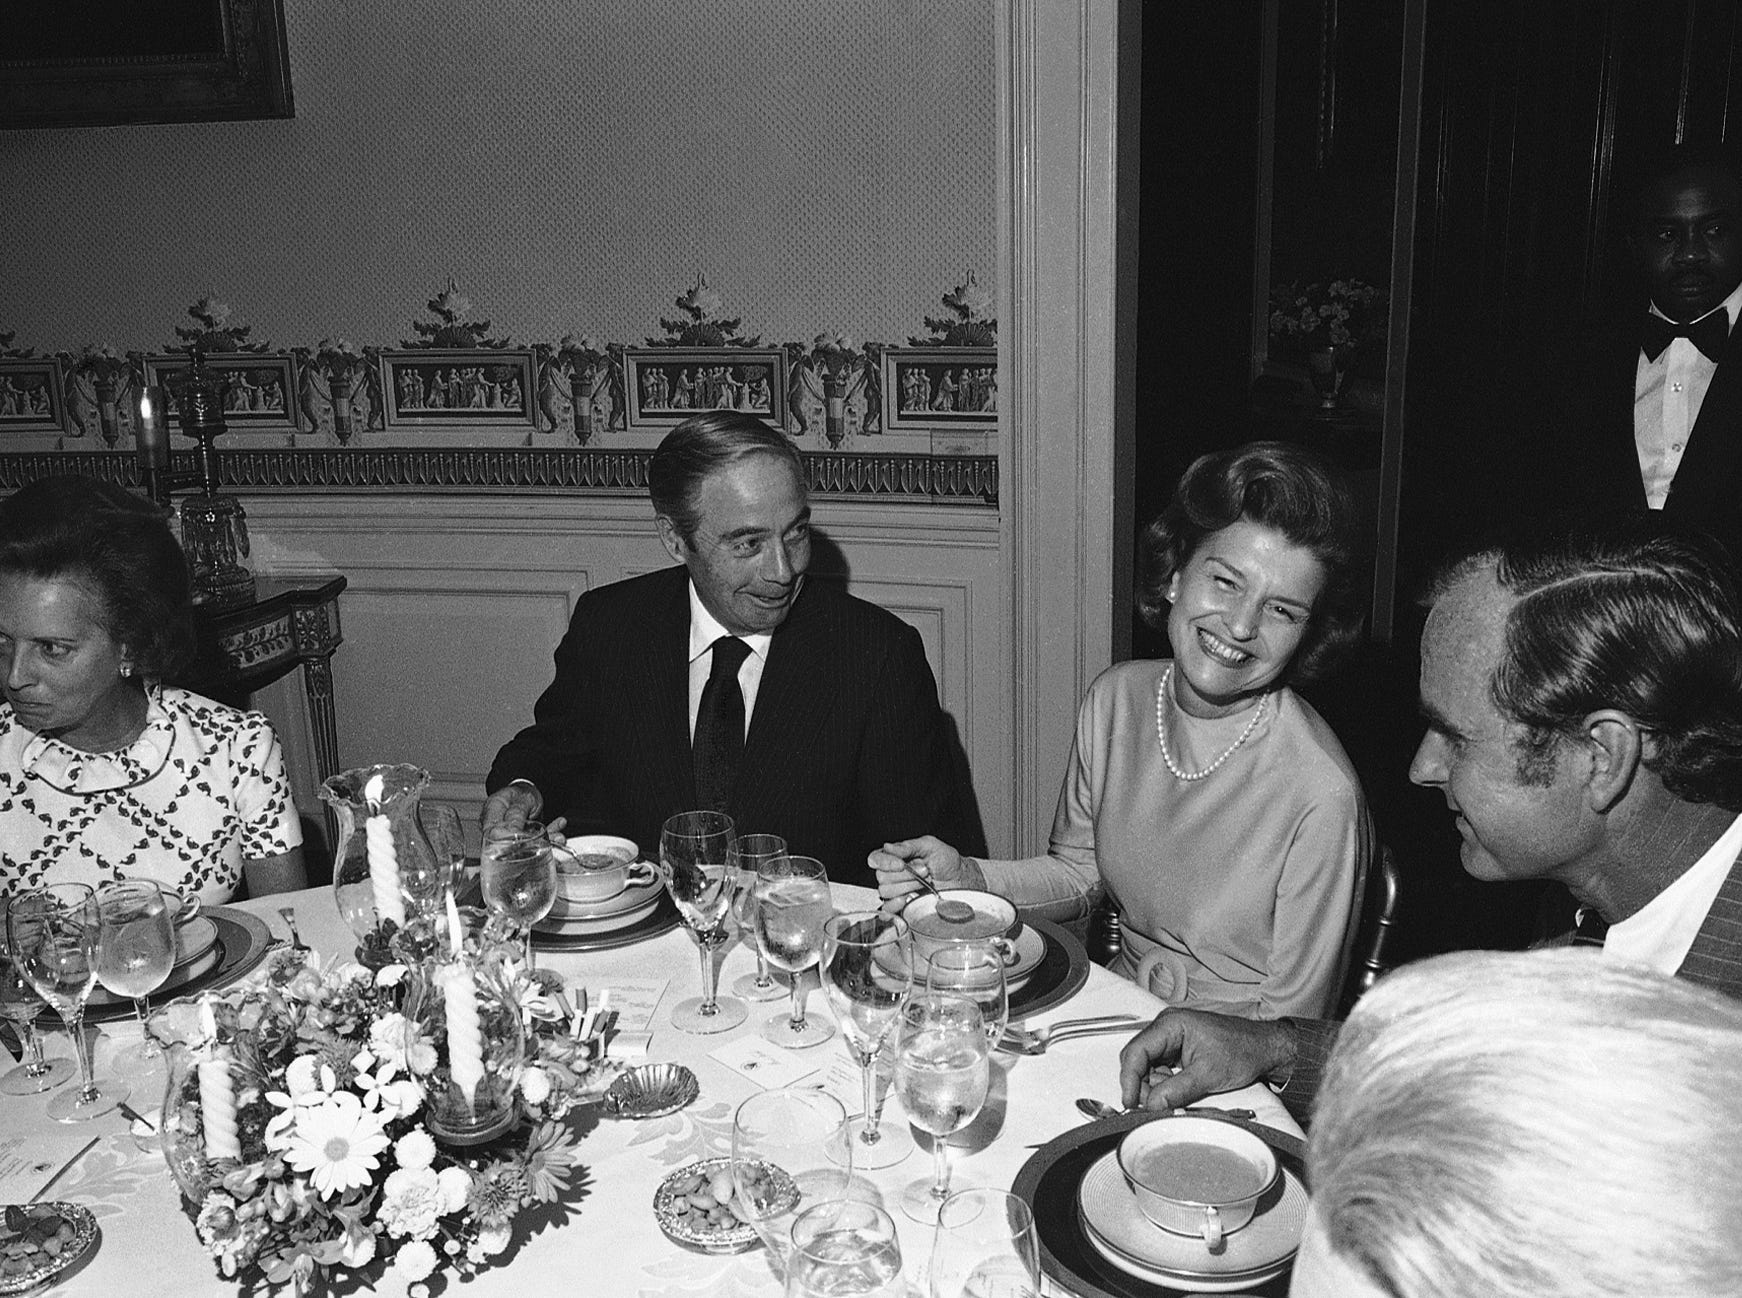 Former Pennsylvania Gov. William Scranton, left, chats with first lady Betty Ford and Republican National Committee Chairman George H.W. Bush during a White House dinner in Washington on Wednesday, Aug. 28, 1974. (AP Photo)